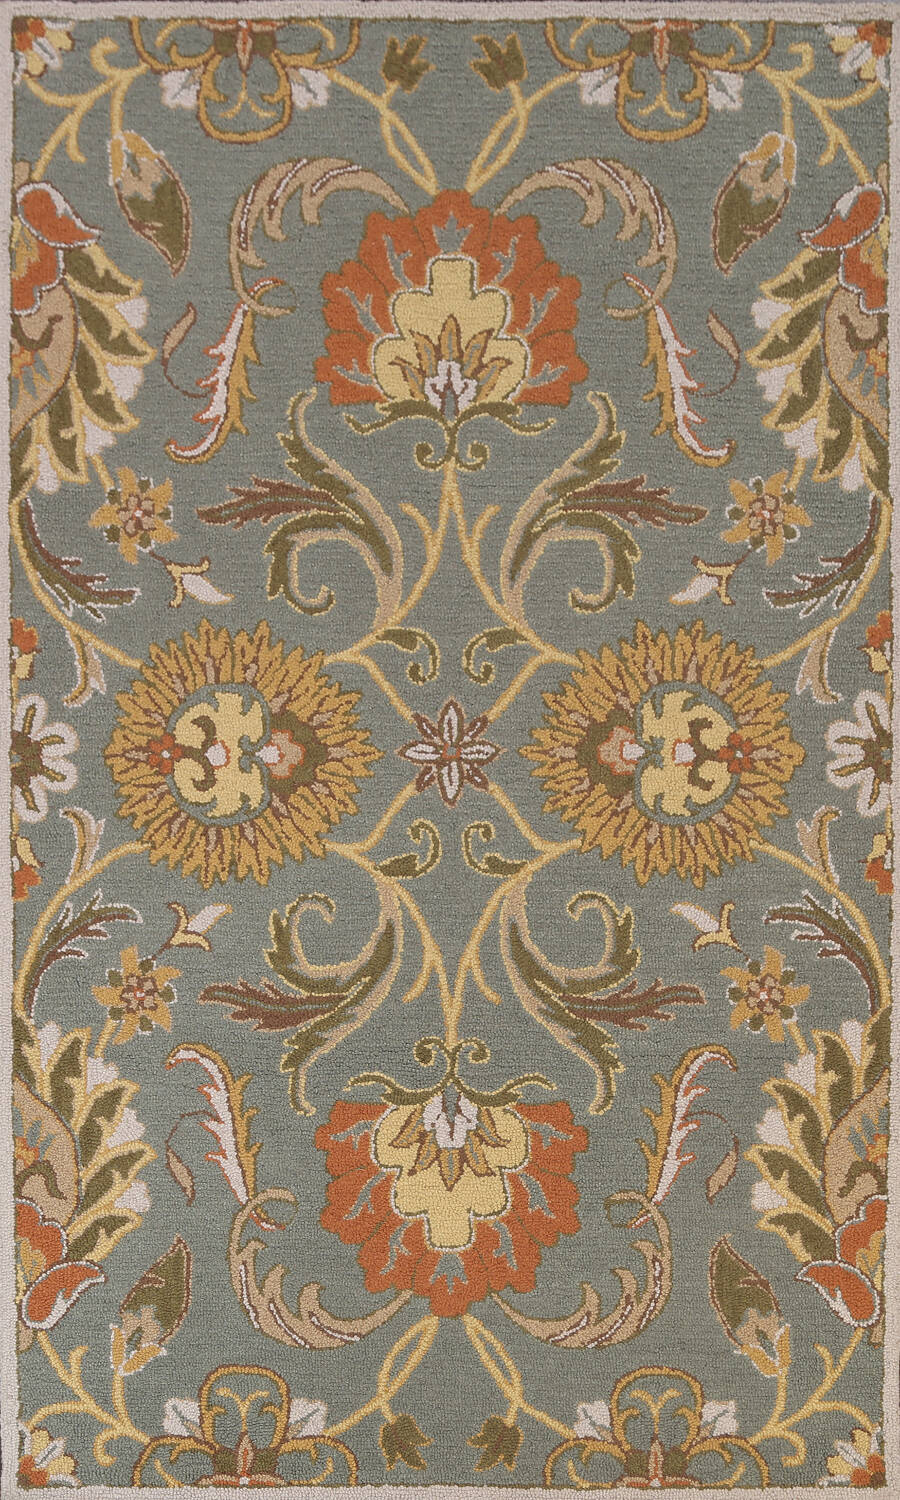 Hand-Tufted Floral Agra Area Rug 5x8 image 1